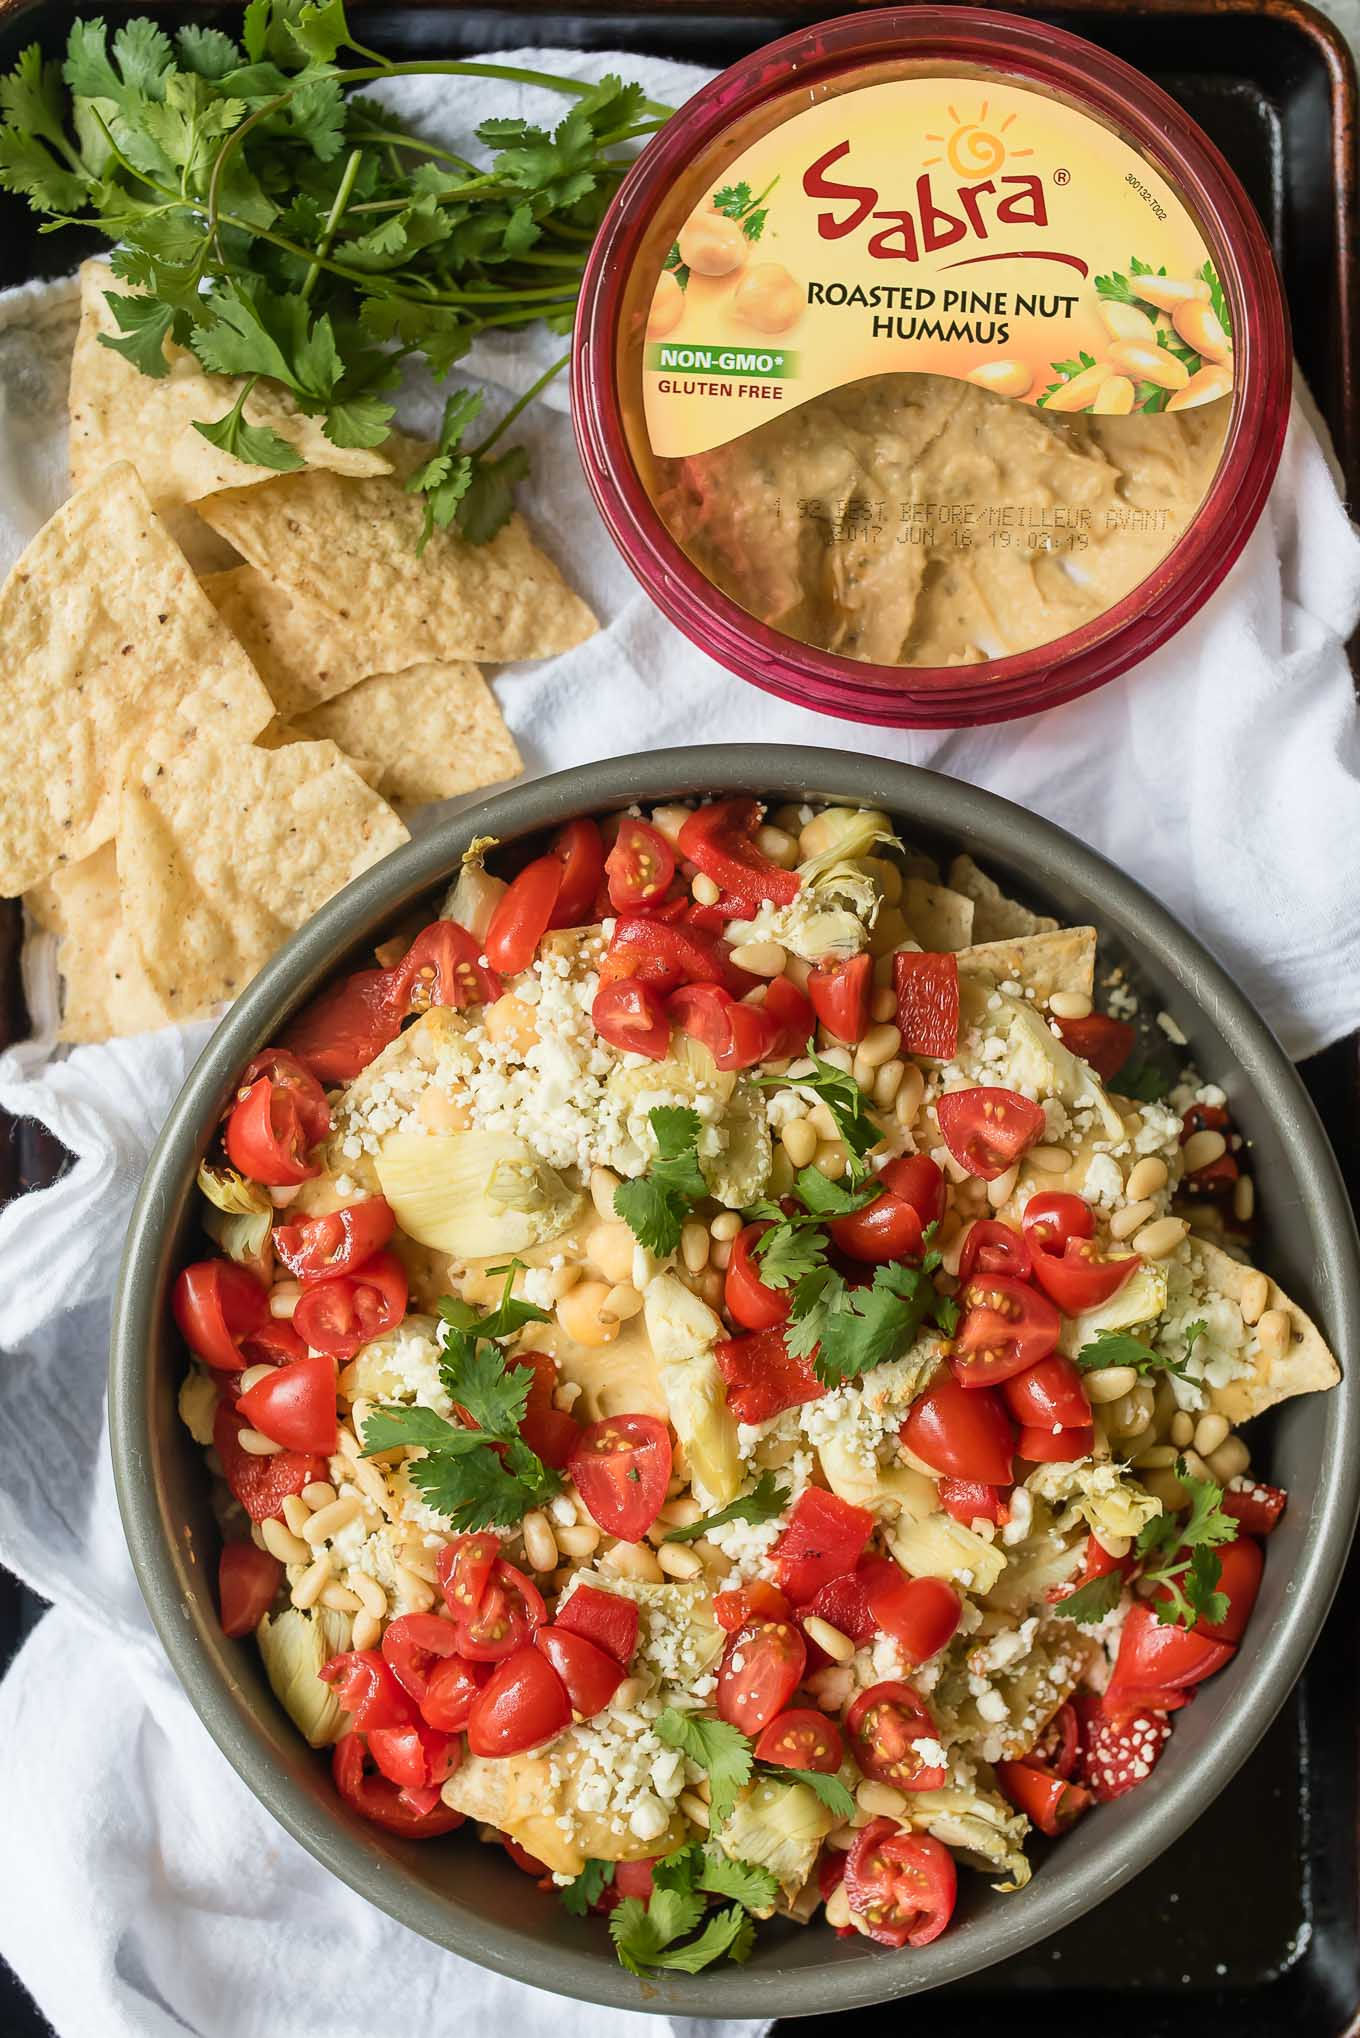 Mediterranean Nachos are a delicious gluten free and vegetarian snack/appetizer loaded with hummus, veggies, feta and more- a fun spin on the classic Tex Mex dish.